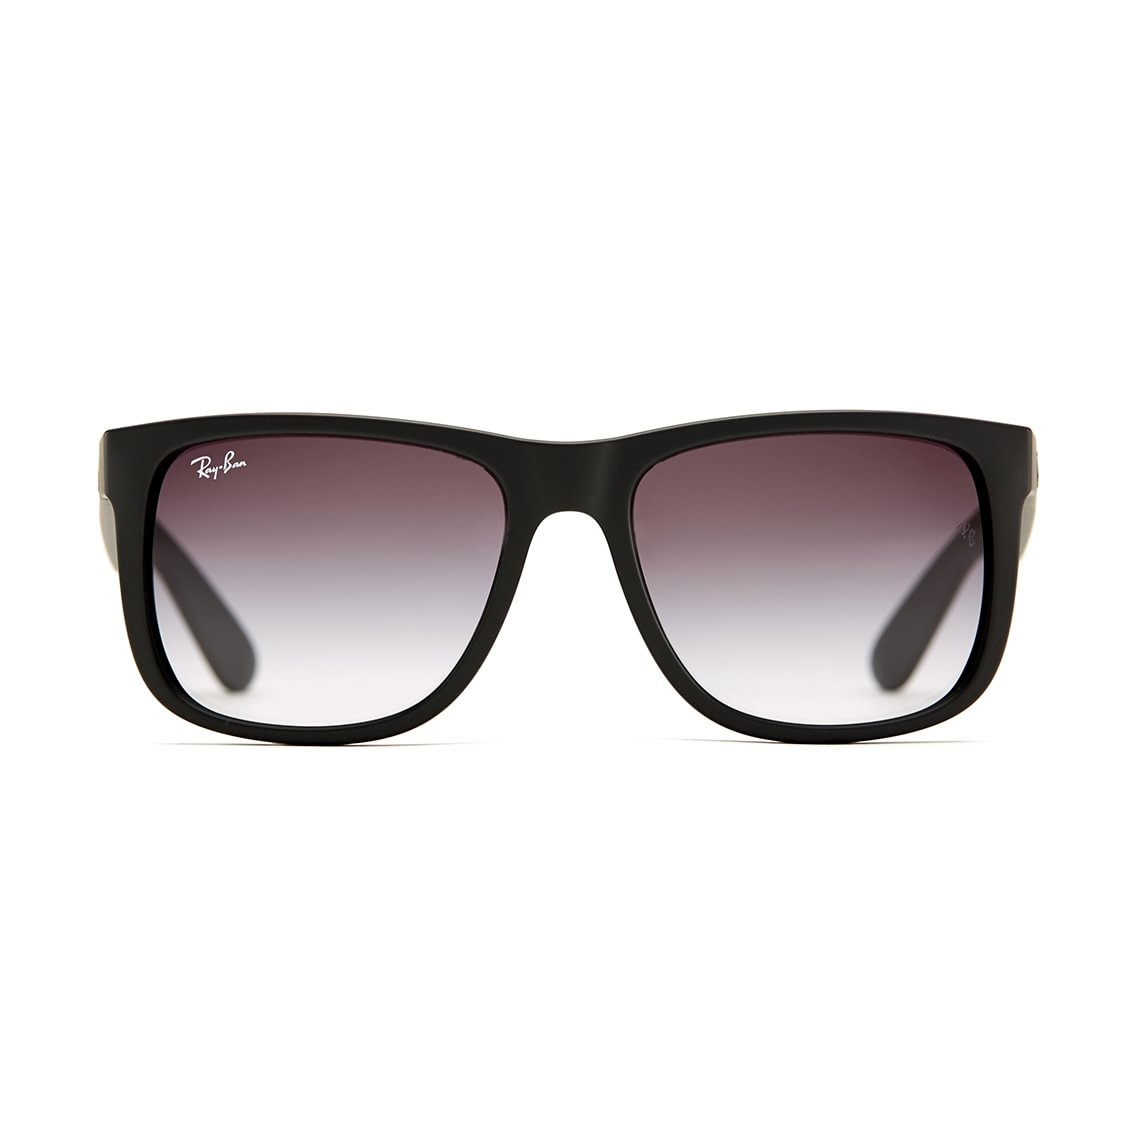 144444a9e9 Ray-Ban Justin RB4165 601 8G 54 - Synsam